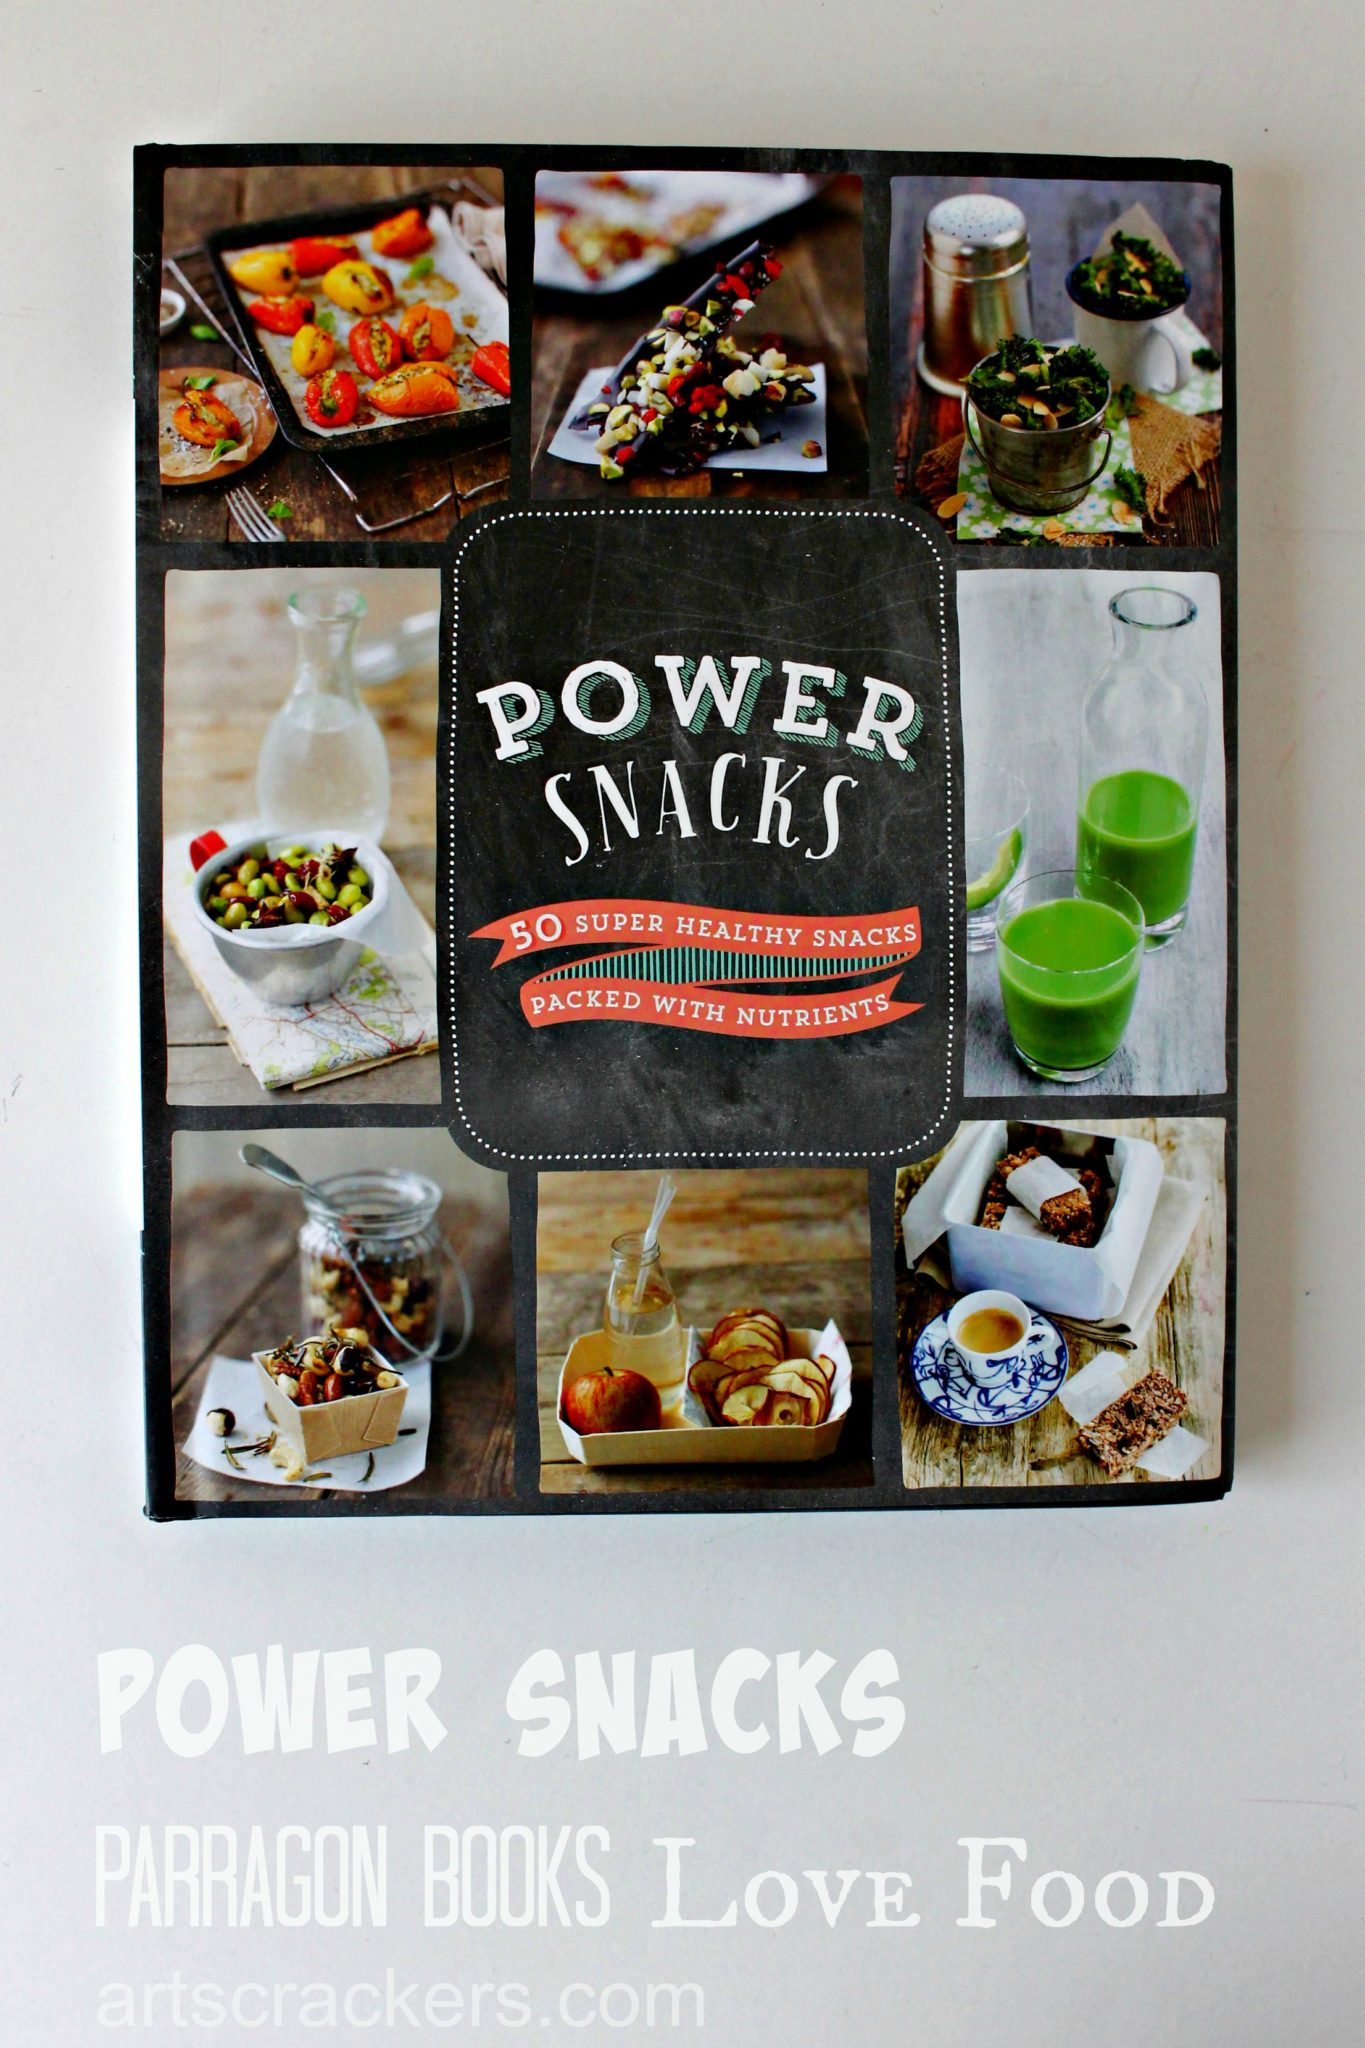 Power Snacks Parragon Books Love Food. Click the picture to read the review.